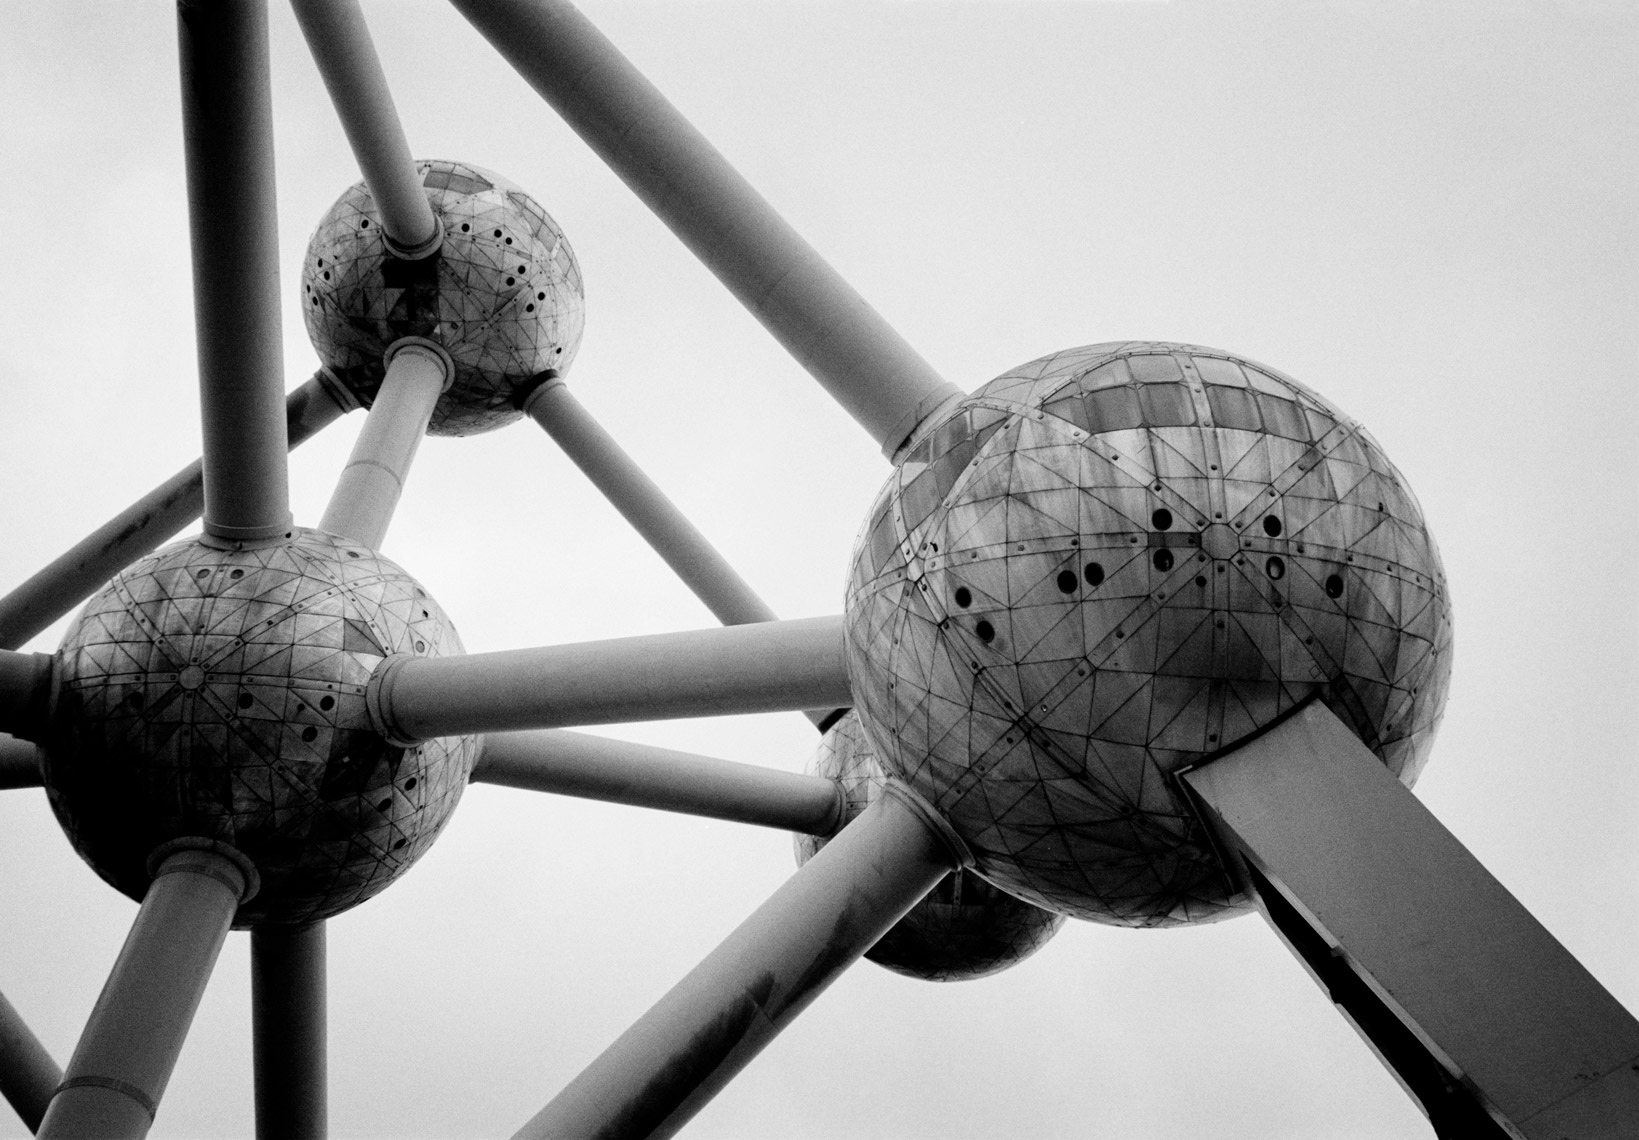 the-atomium-brussels-belgium-poul-ober-photography